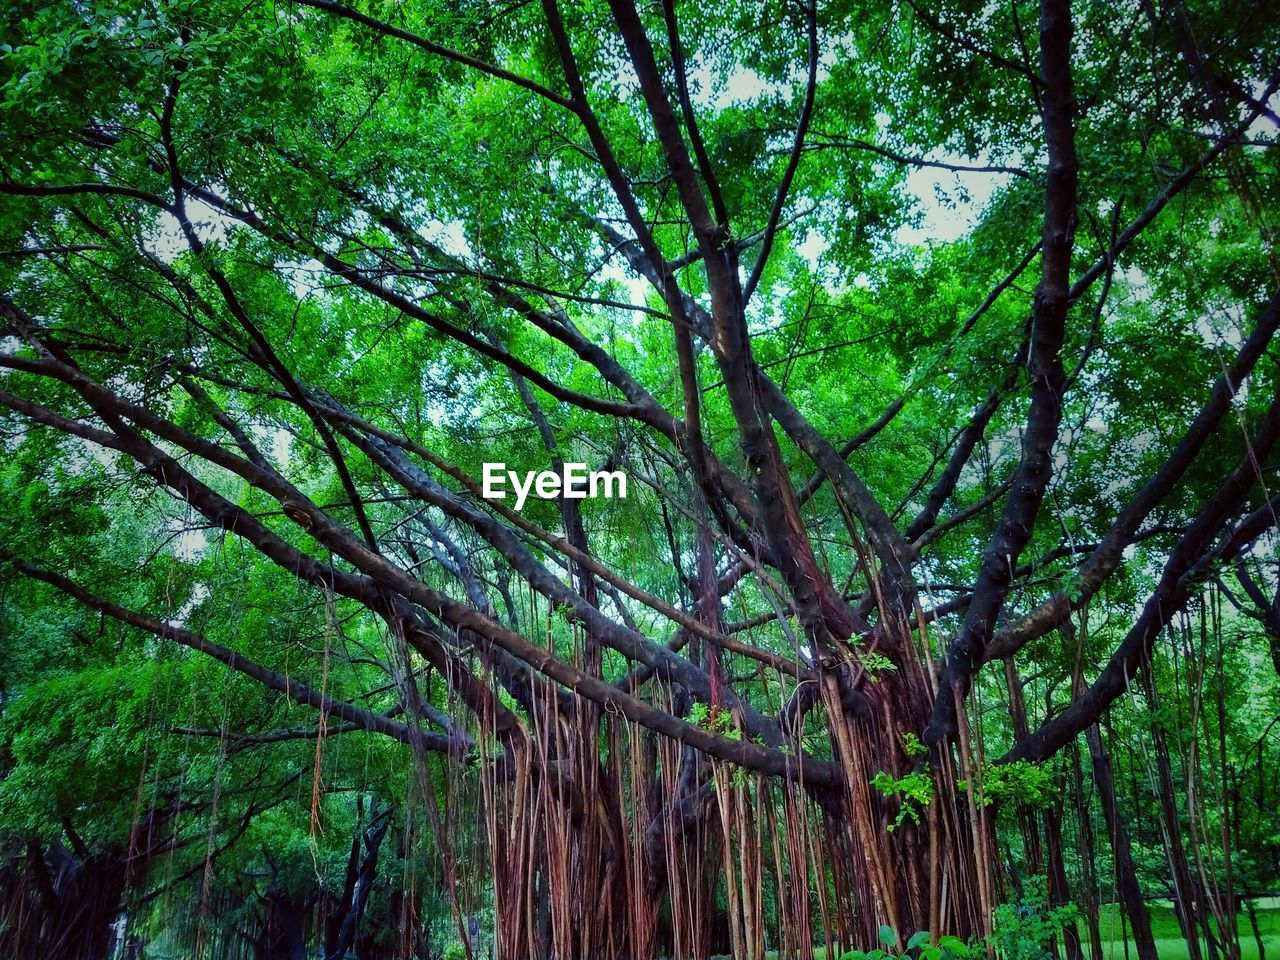 tree, plant, forest, growth, green color, land, tree trunk, trunk, nature, woodland, beauty in nature, tranquility, no people, day, branch, lush foliage, foliage, scenics - nature, outdoors, tranquil scene, bamboo - plant, rainforest, tree canopy